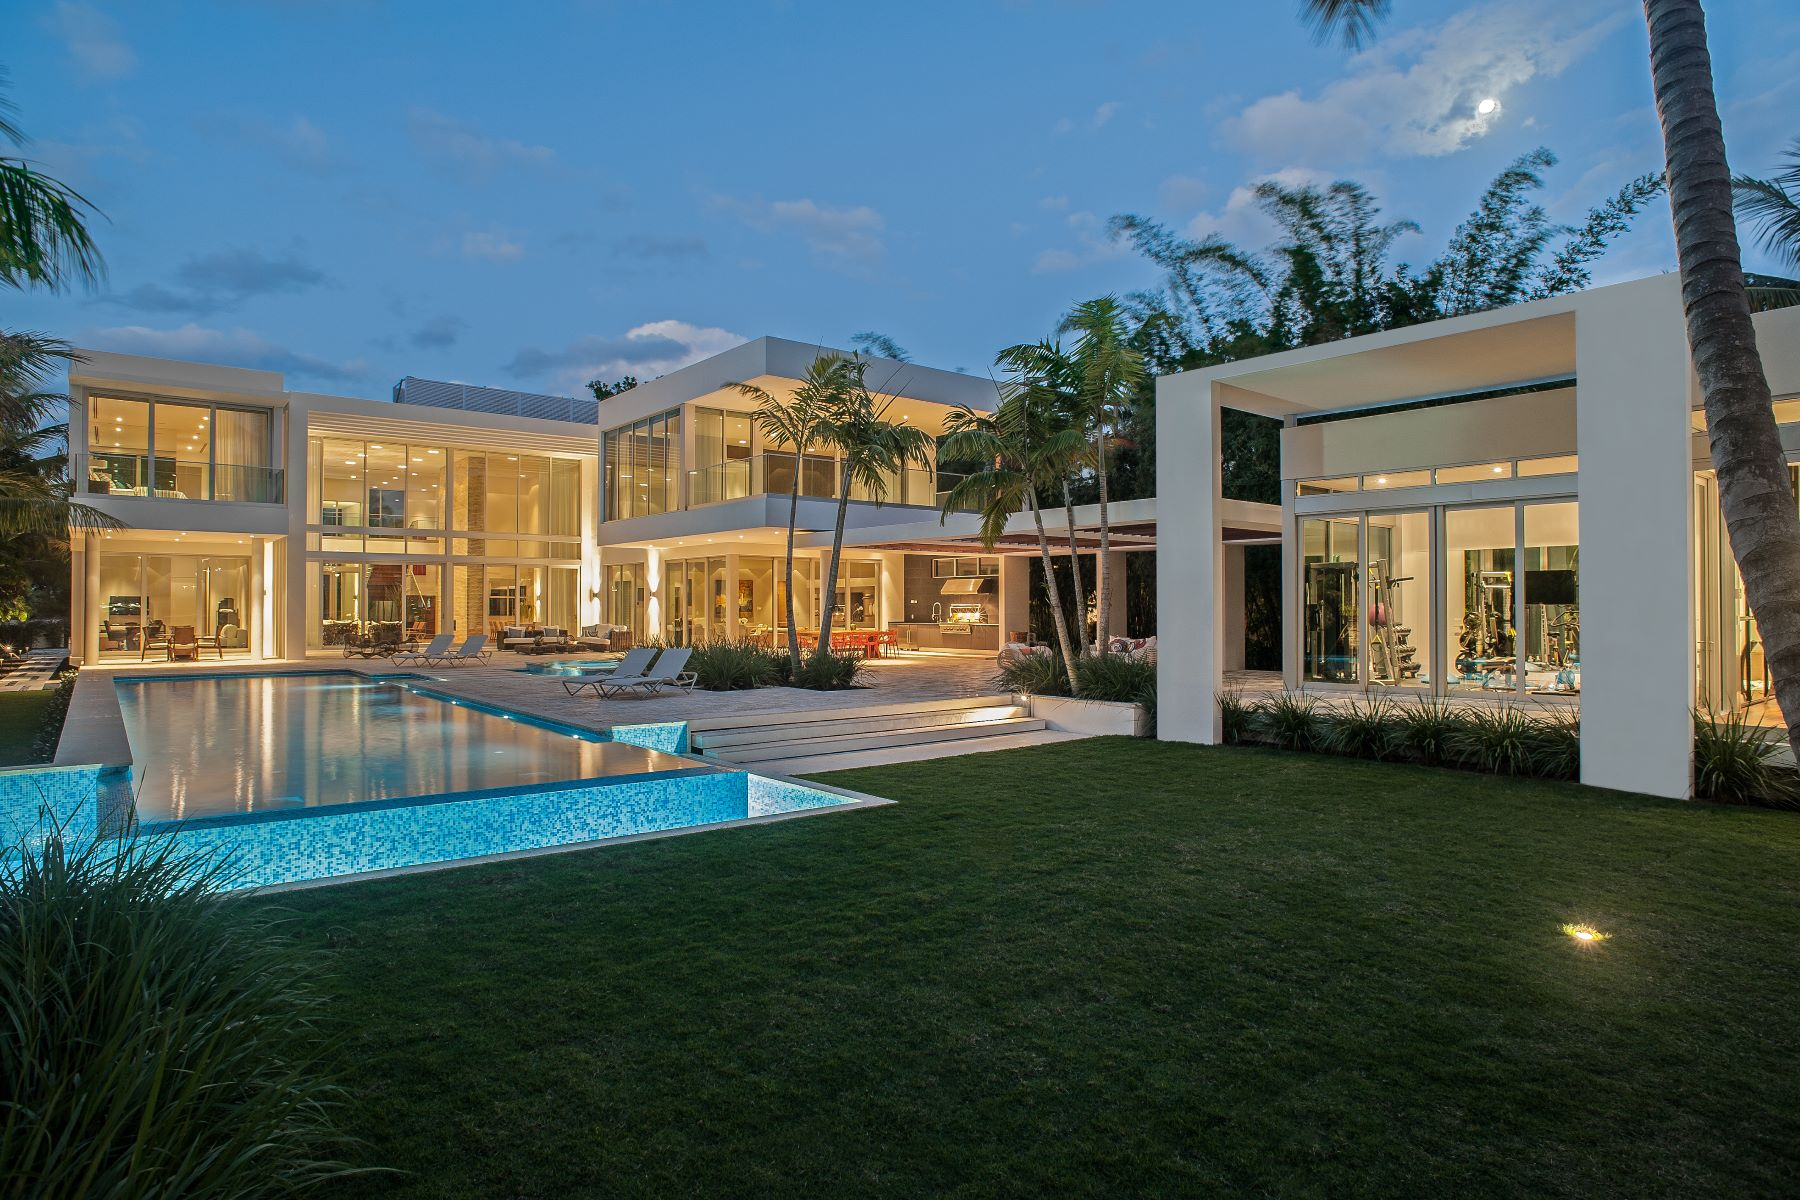 single family homes for Active at 30 Palm Av Miami Beach, Florida 33139 United States